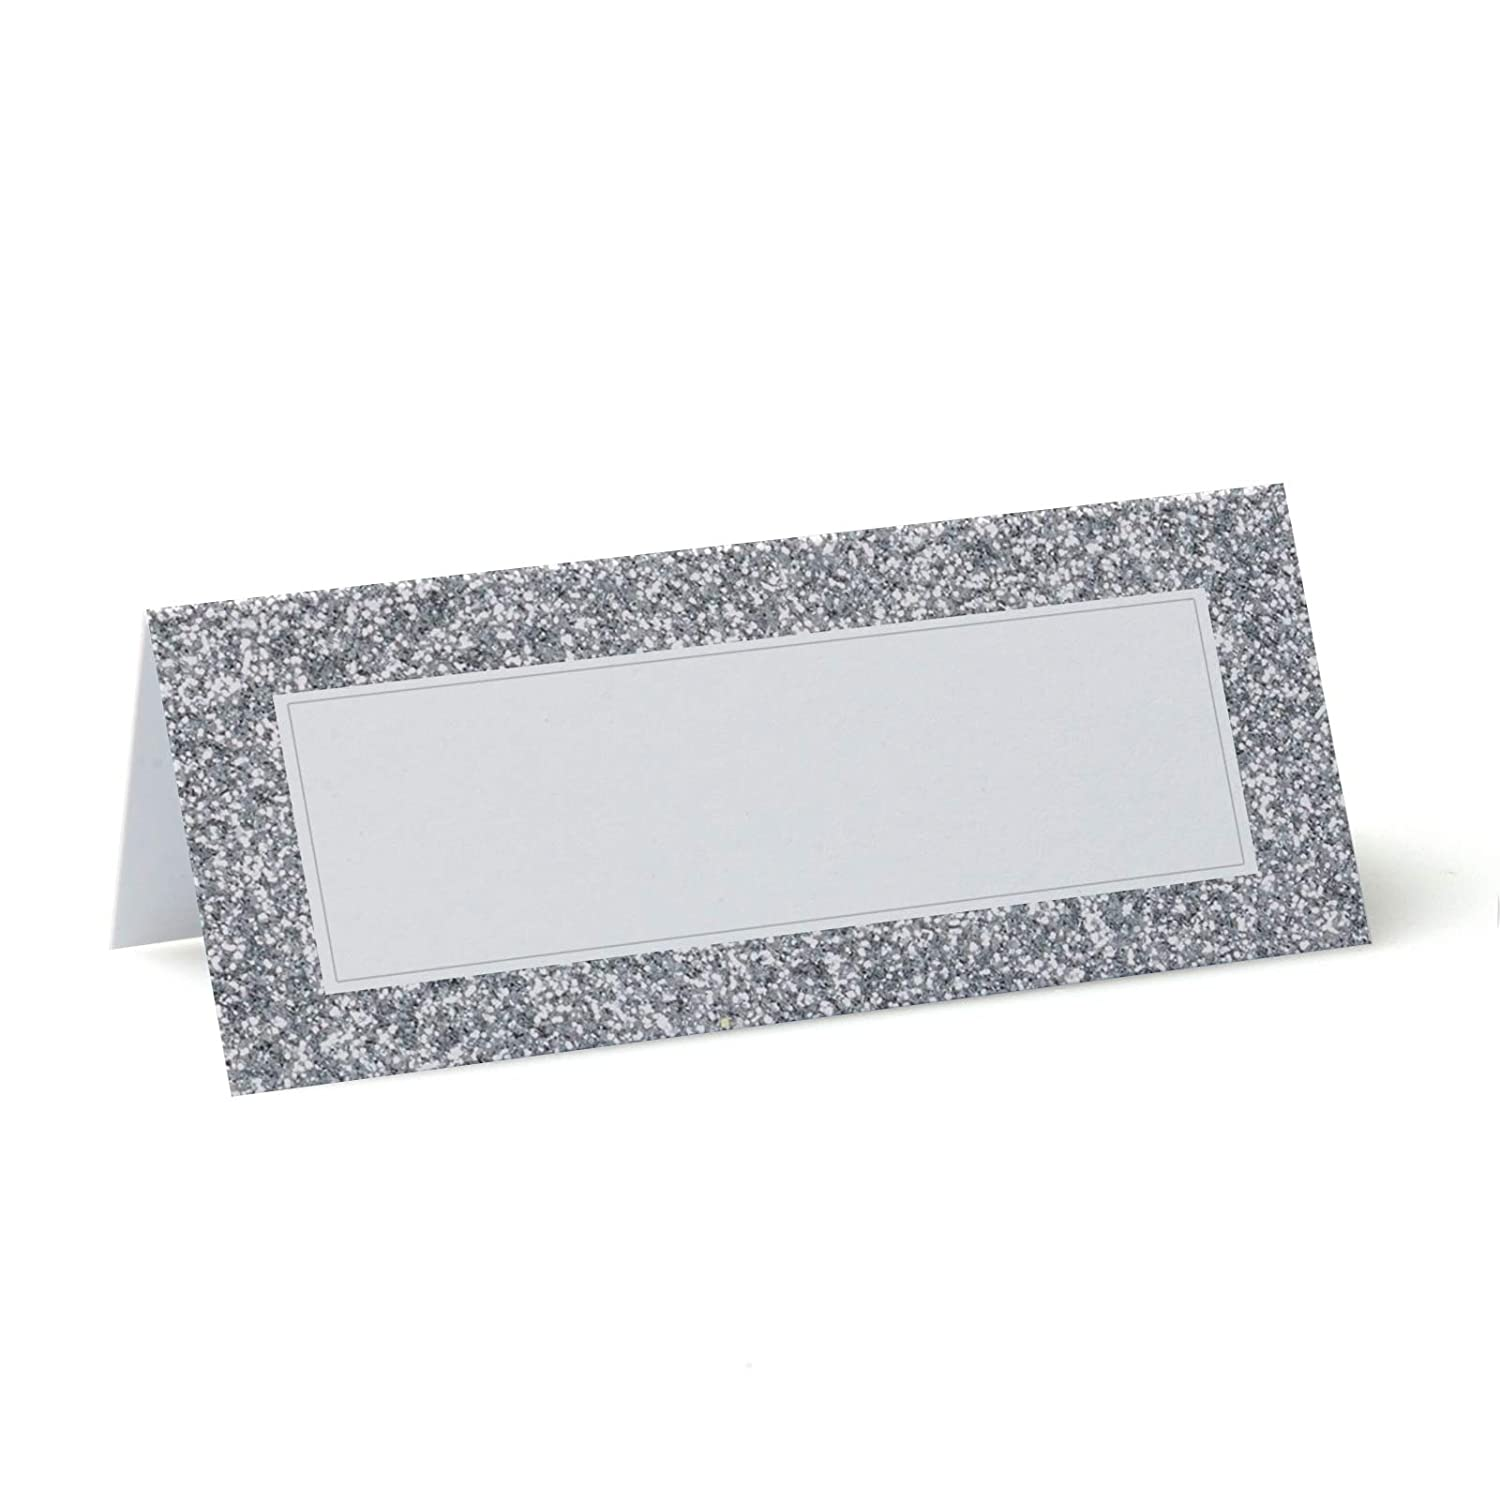 Printed Silver Glitter Effect Place Cards 10 90mm x 37mm Christmas Winter Wedding